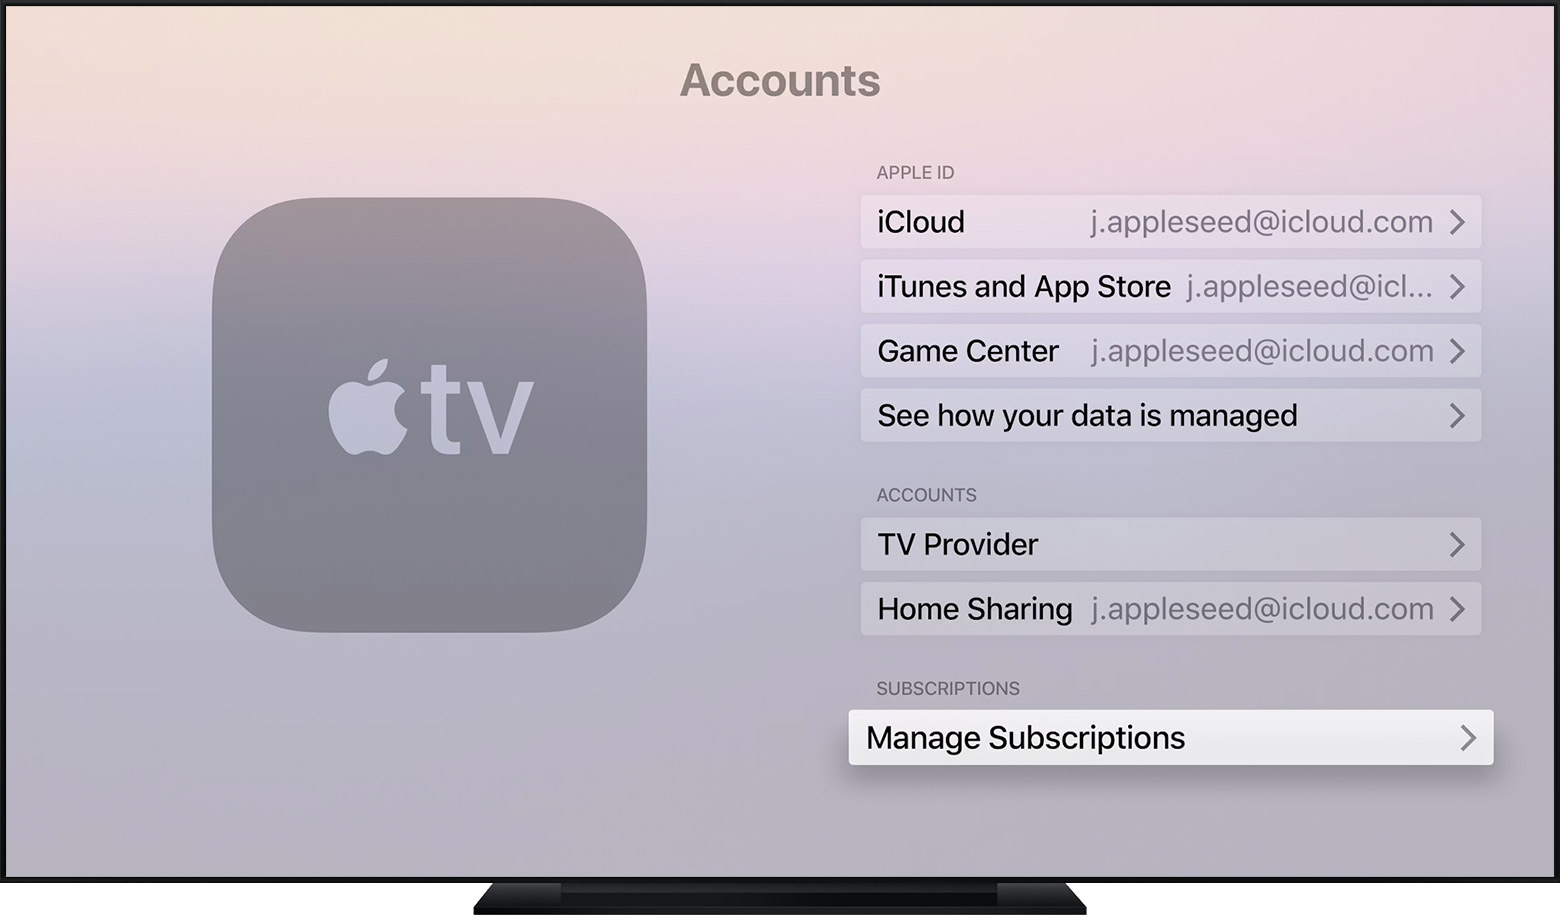 View, change, or cancel your subscriptions - Apple Atbalsts